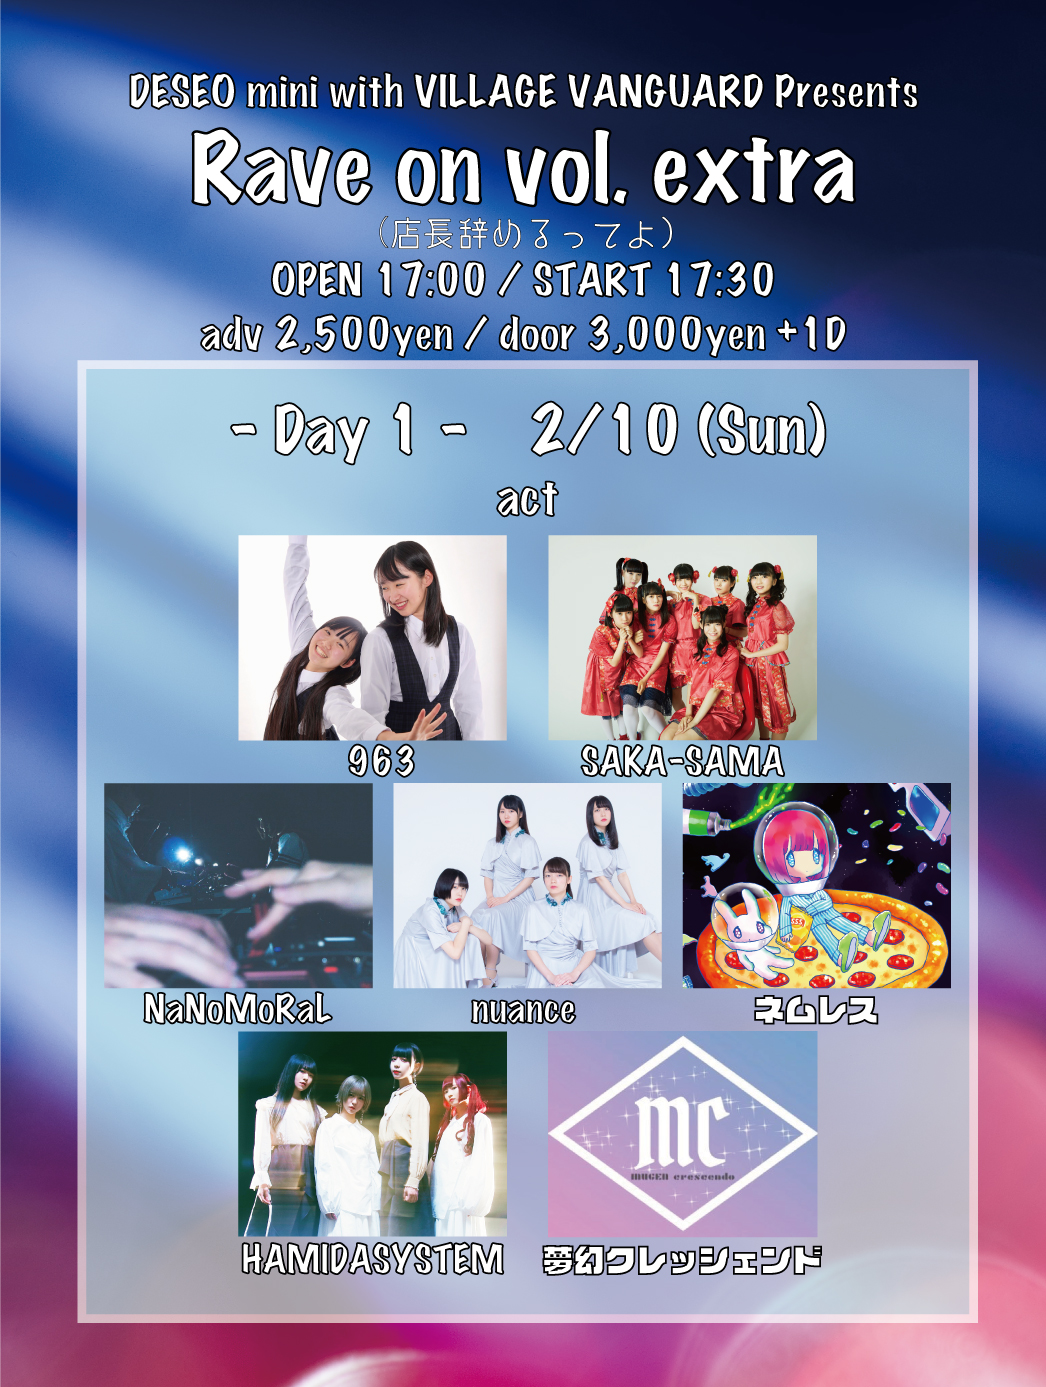 Rave on vol. extra -Day1-